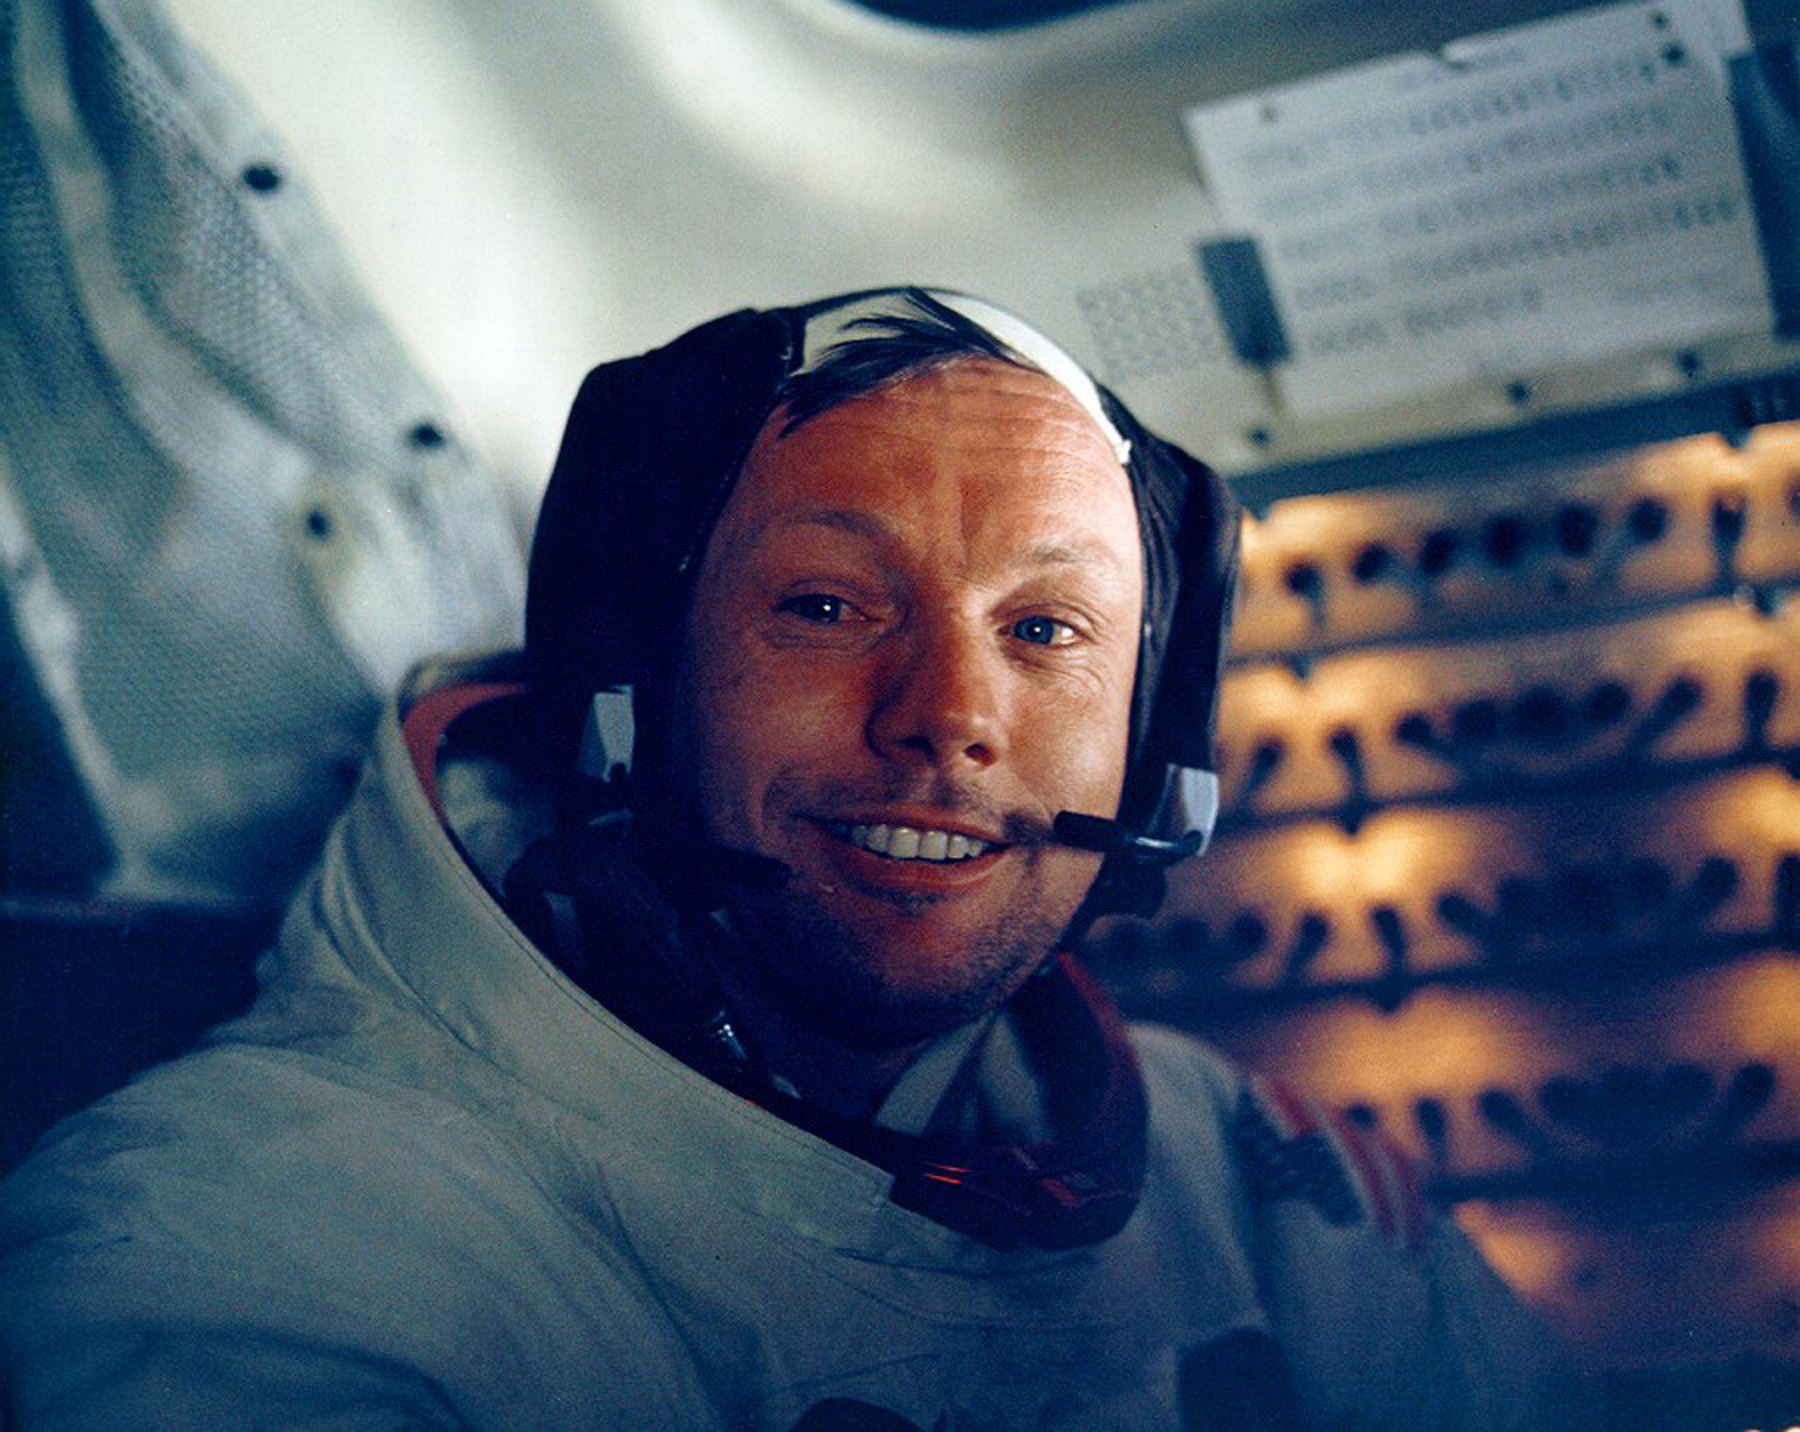 Astronaut Neil Armstrong smiles inside the Lunar Module on July 20, 1969.